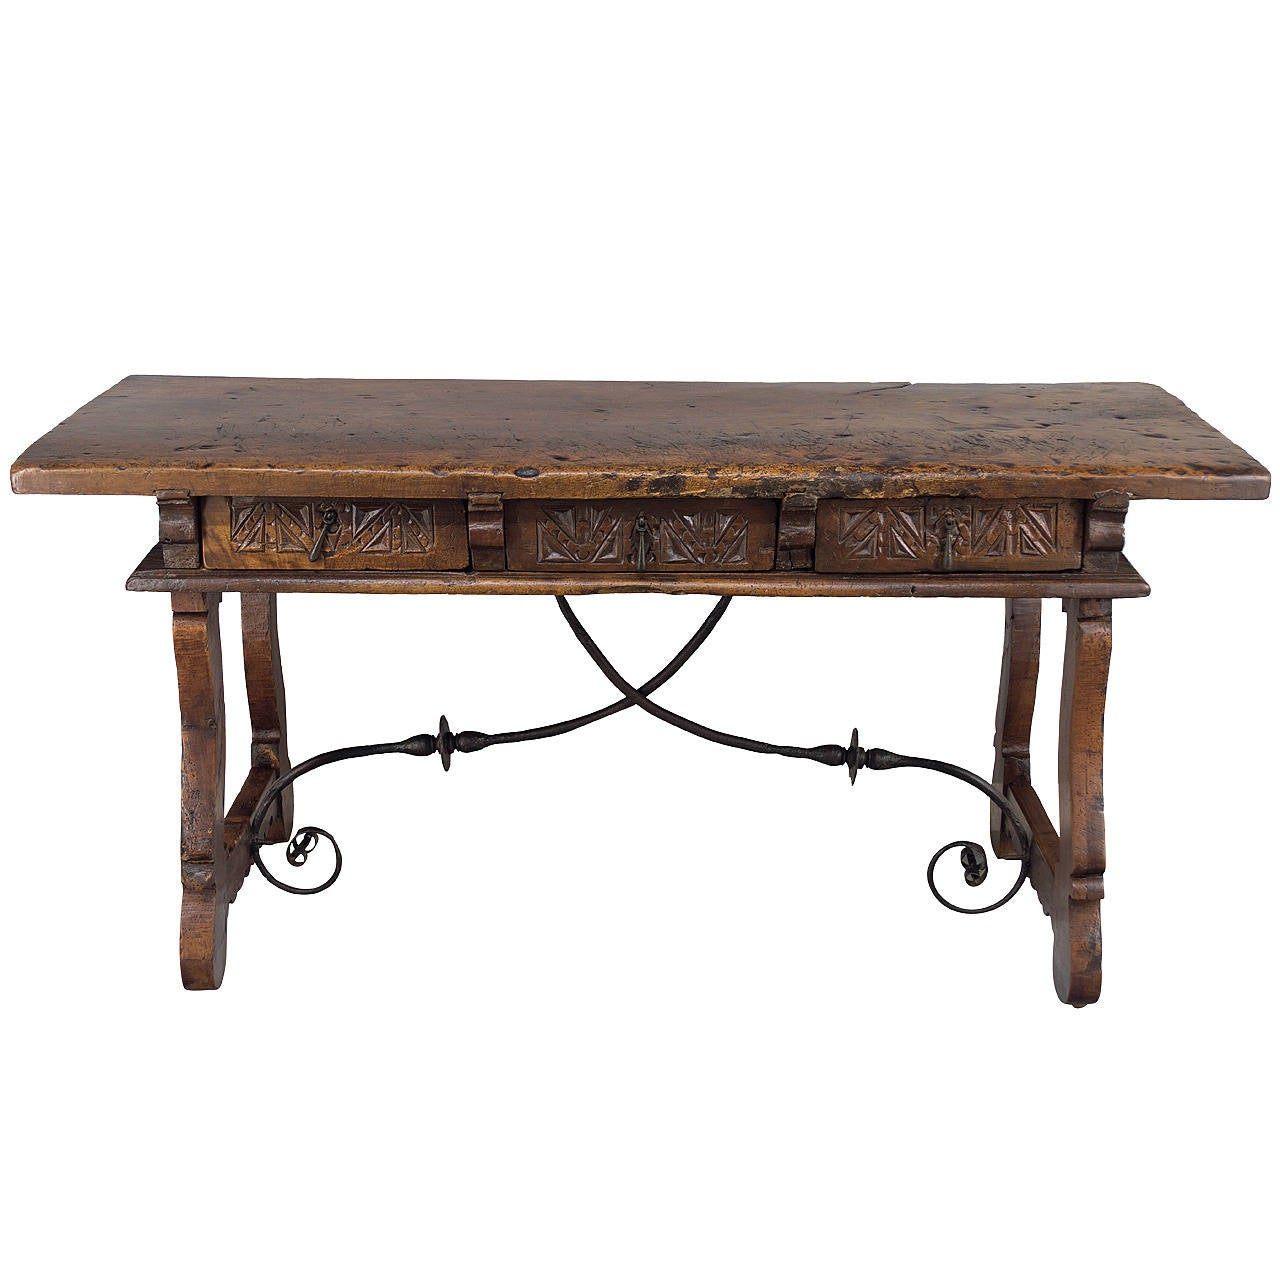 18th century spanish baroque table desk at 1stdibs for Table in spanish